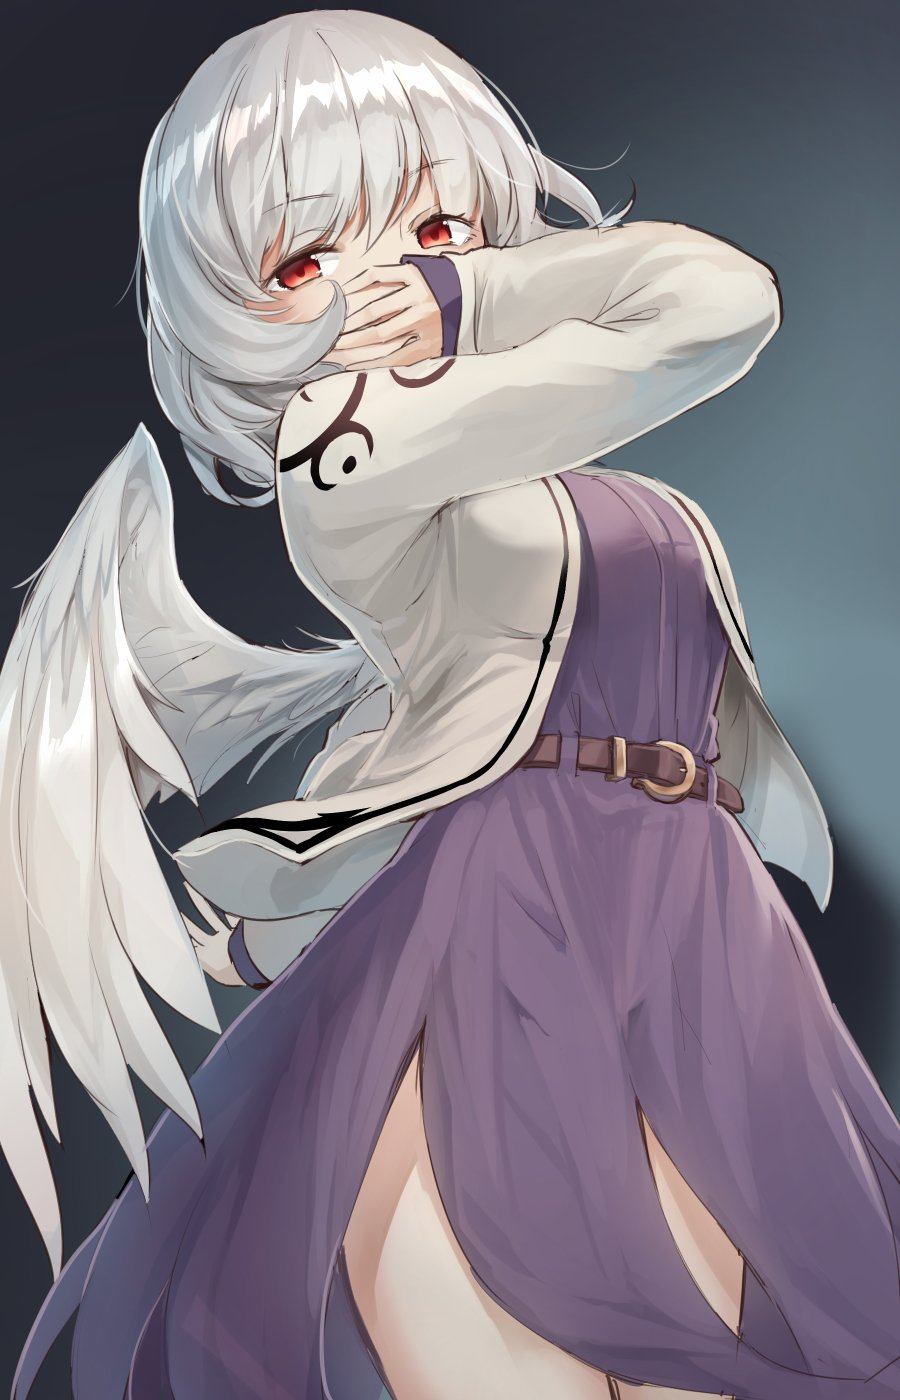 1girl arm_up bangs belt breasts brown_belt commentary_request cowboy_shot dress eyebrows_visible_through_hair feathered_wings grey_background grey_jacket highres jacket kishin_sagume looking_at_viewer medium_breasts open_clothes open_jacket purple_dress red_eyes short_hair silver_hair single_wing solo standing touhou usotsuki_penta white_wings wings